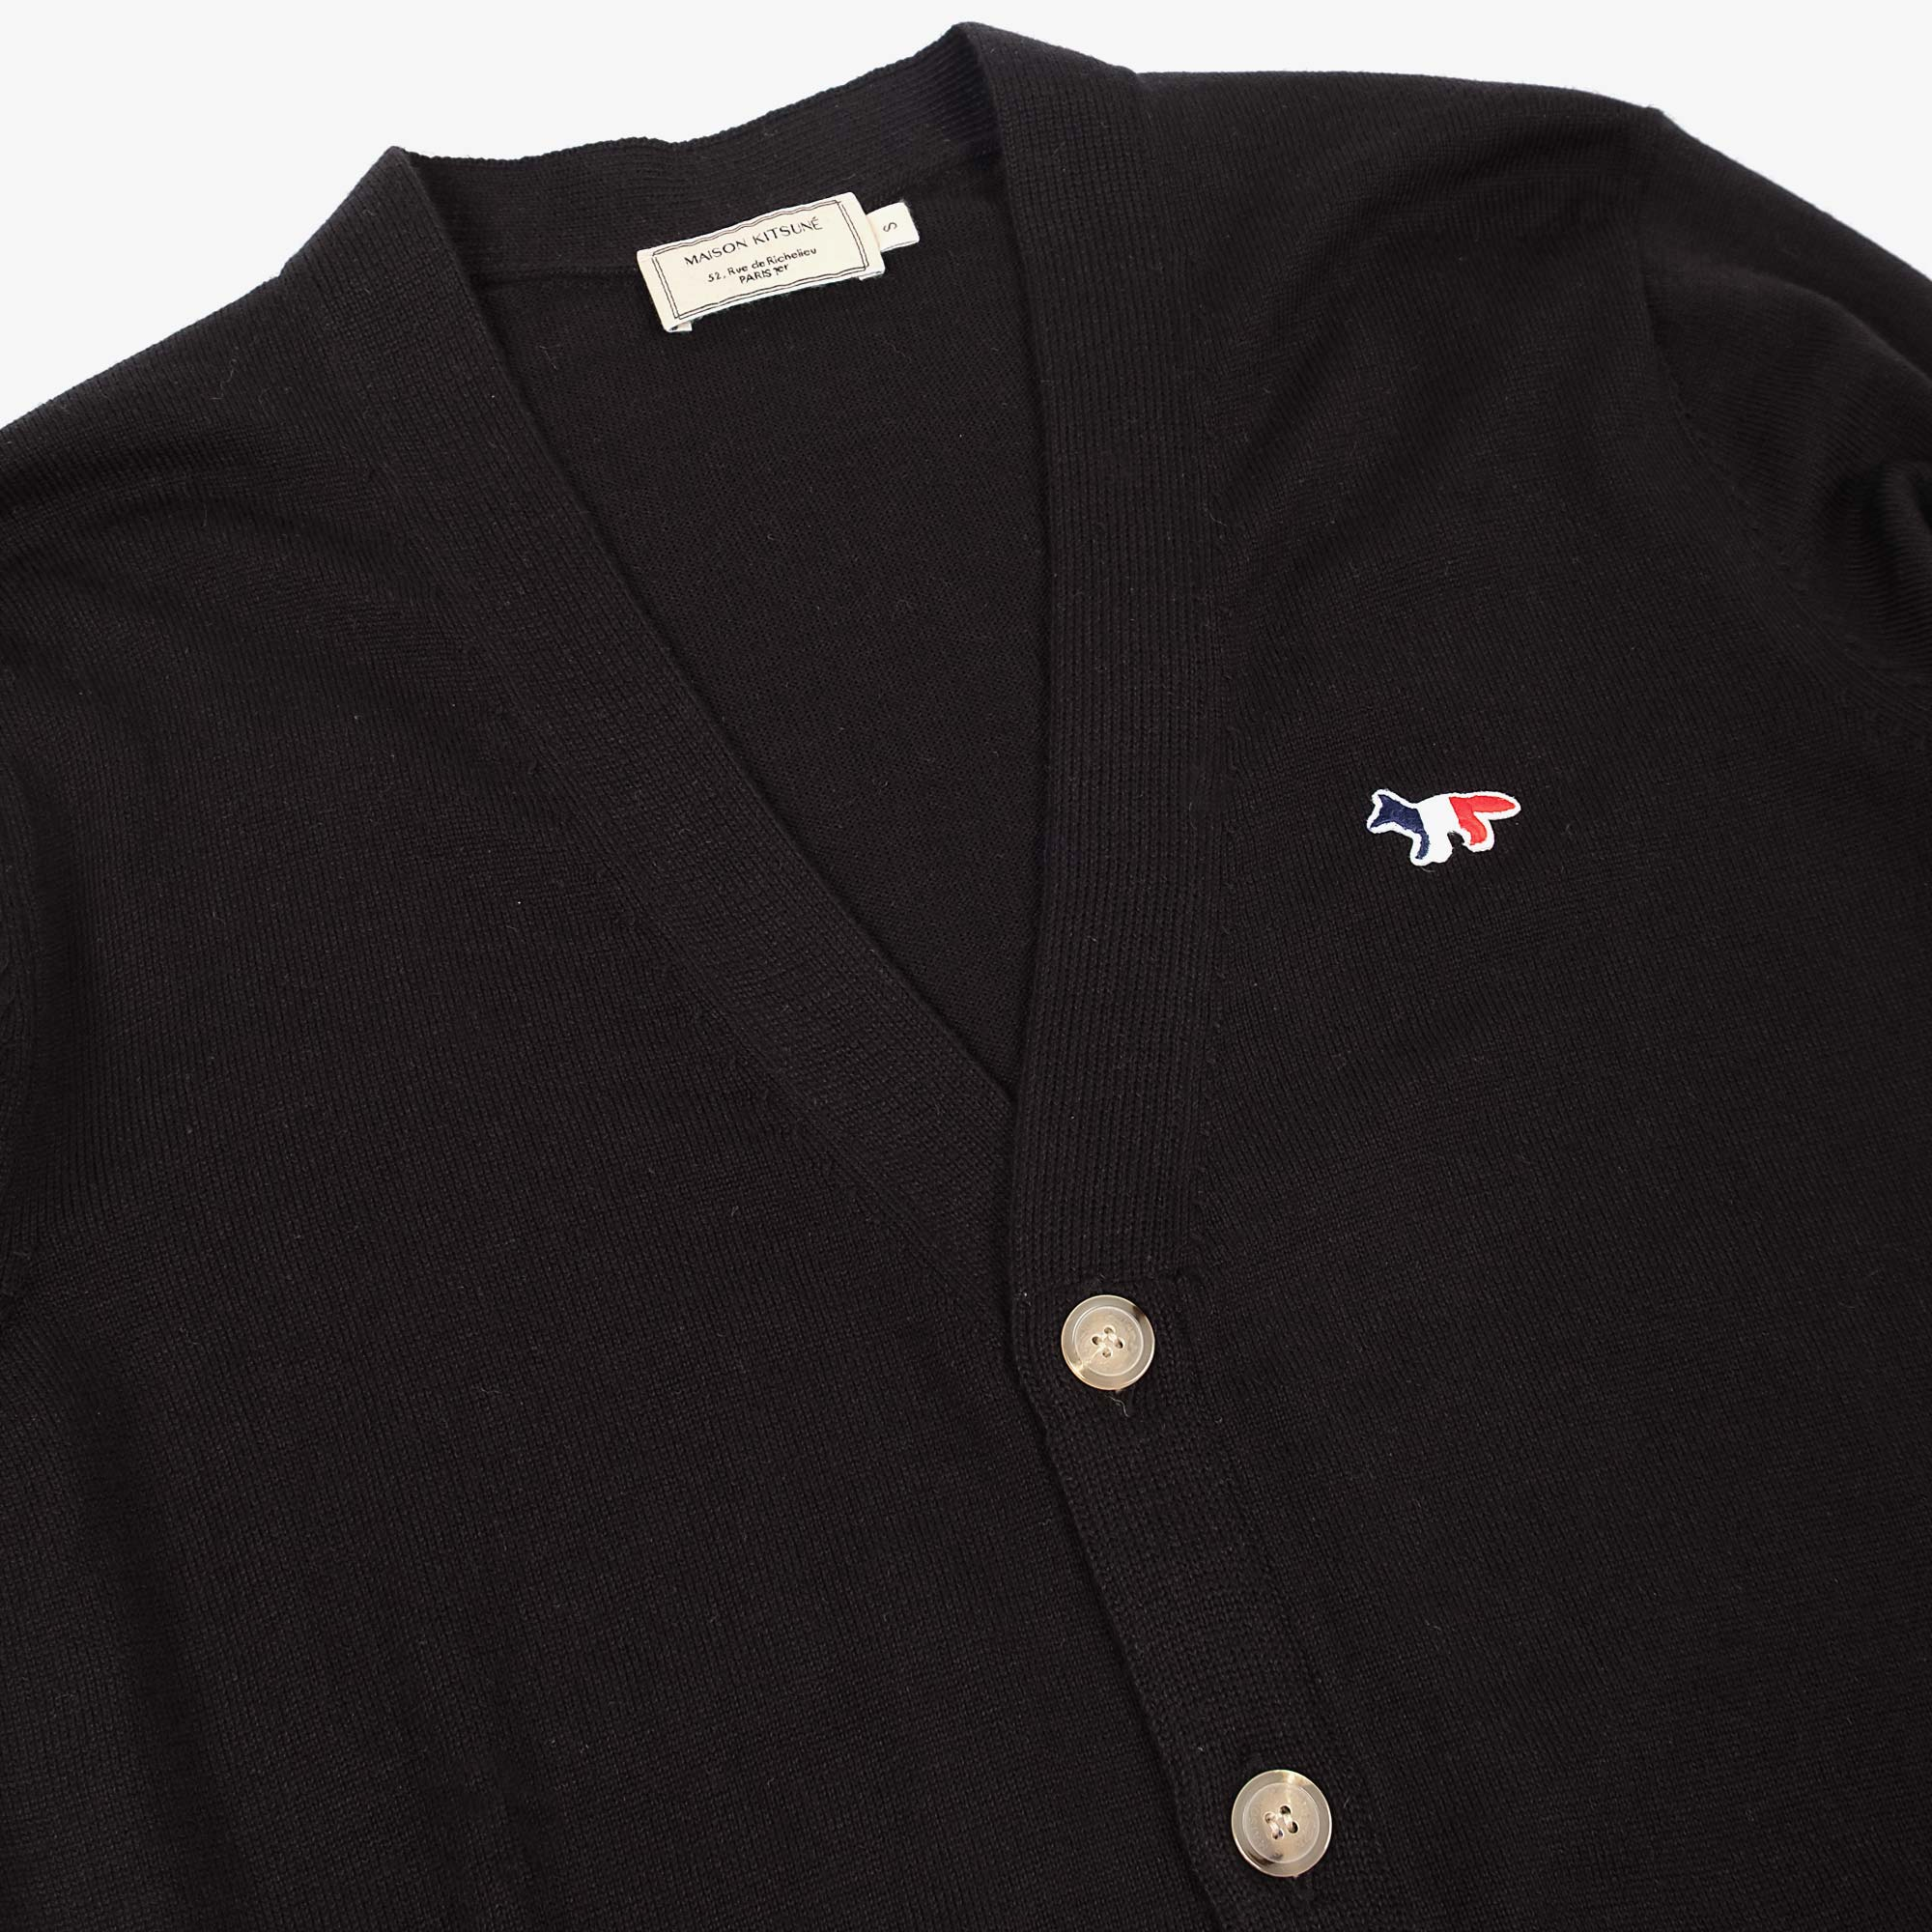 Maison Kitsune Mens Tricolour Fox Patch Merino Cardigan - Black 2